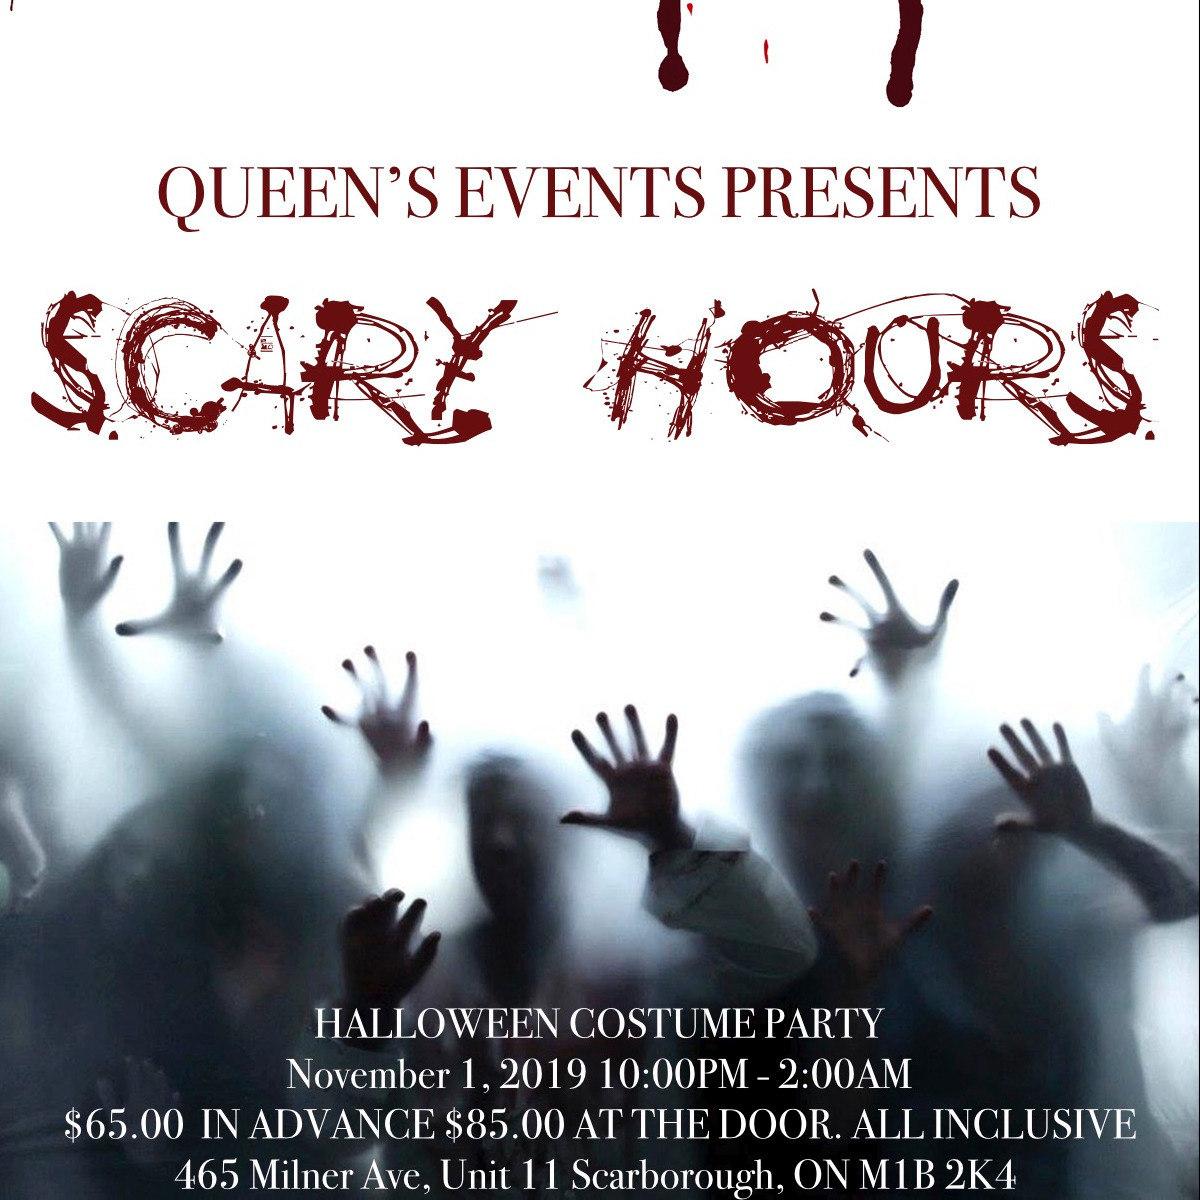 Queen's Events Presents Scary Hours